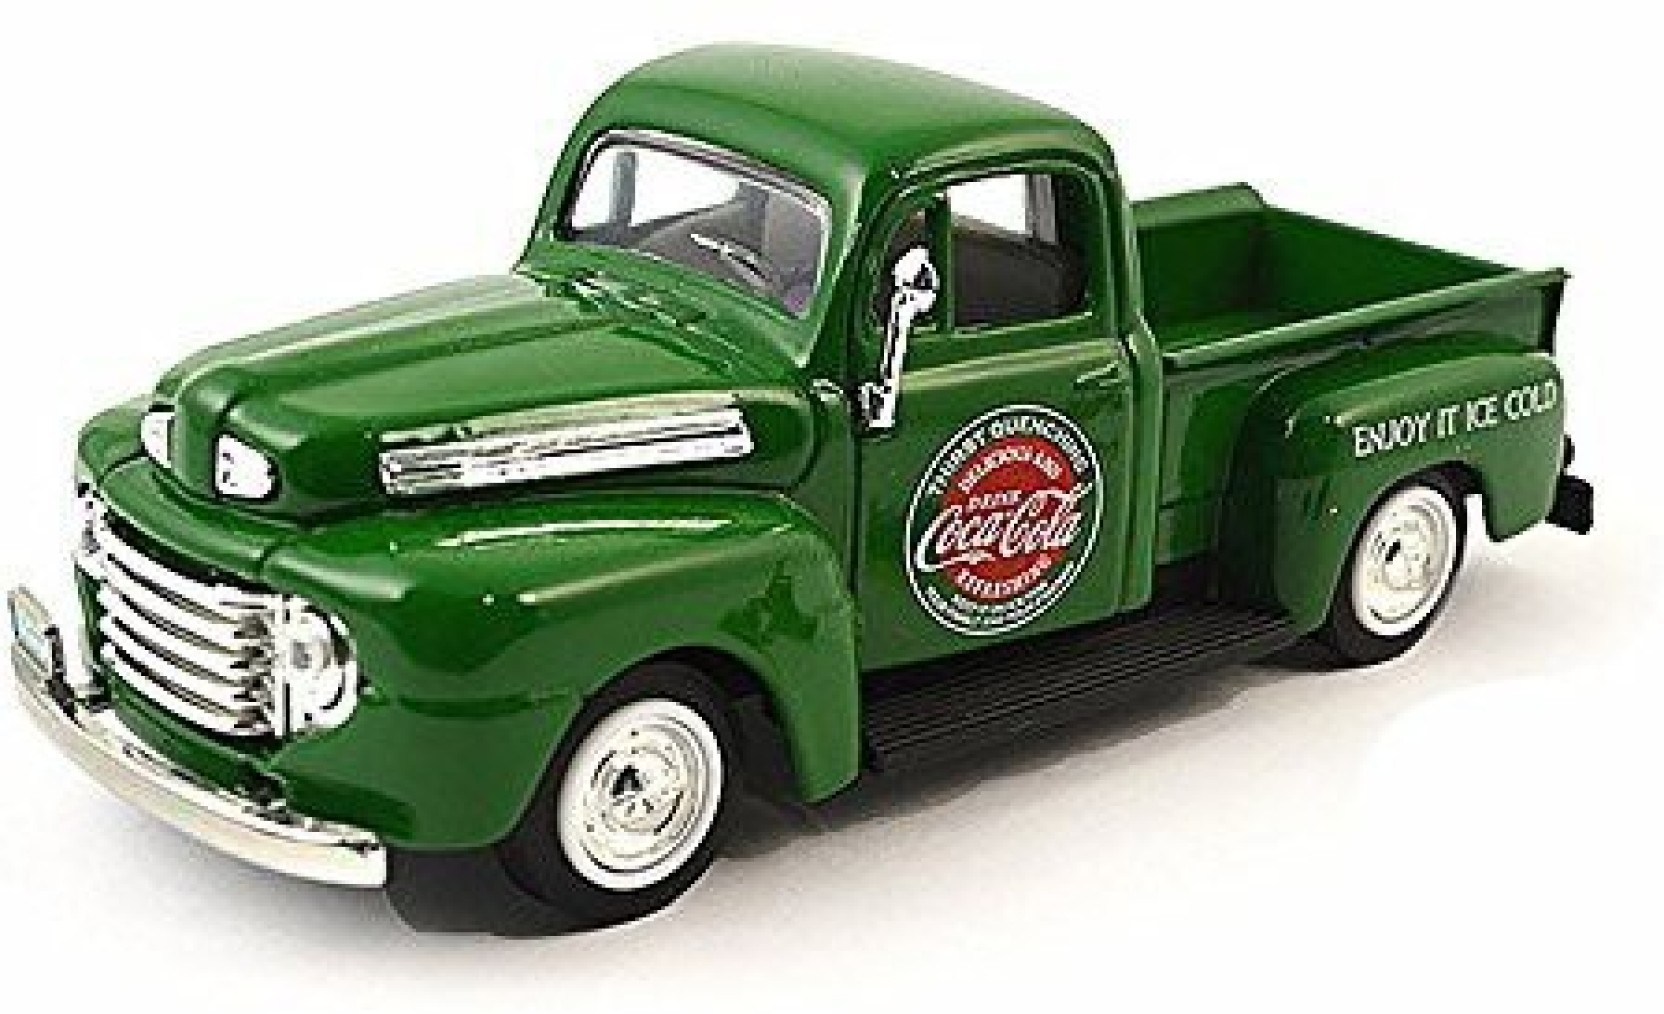 Motor City Classics 1948 Ford Pickup Truck Coca Cola With Coke Bottle Cases And Hand Cart Share